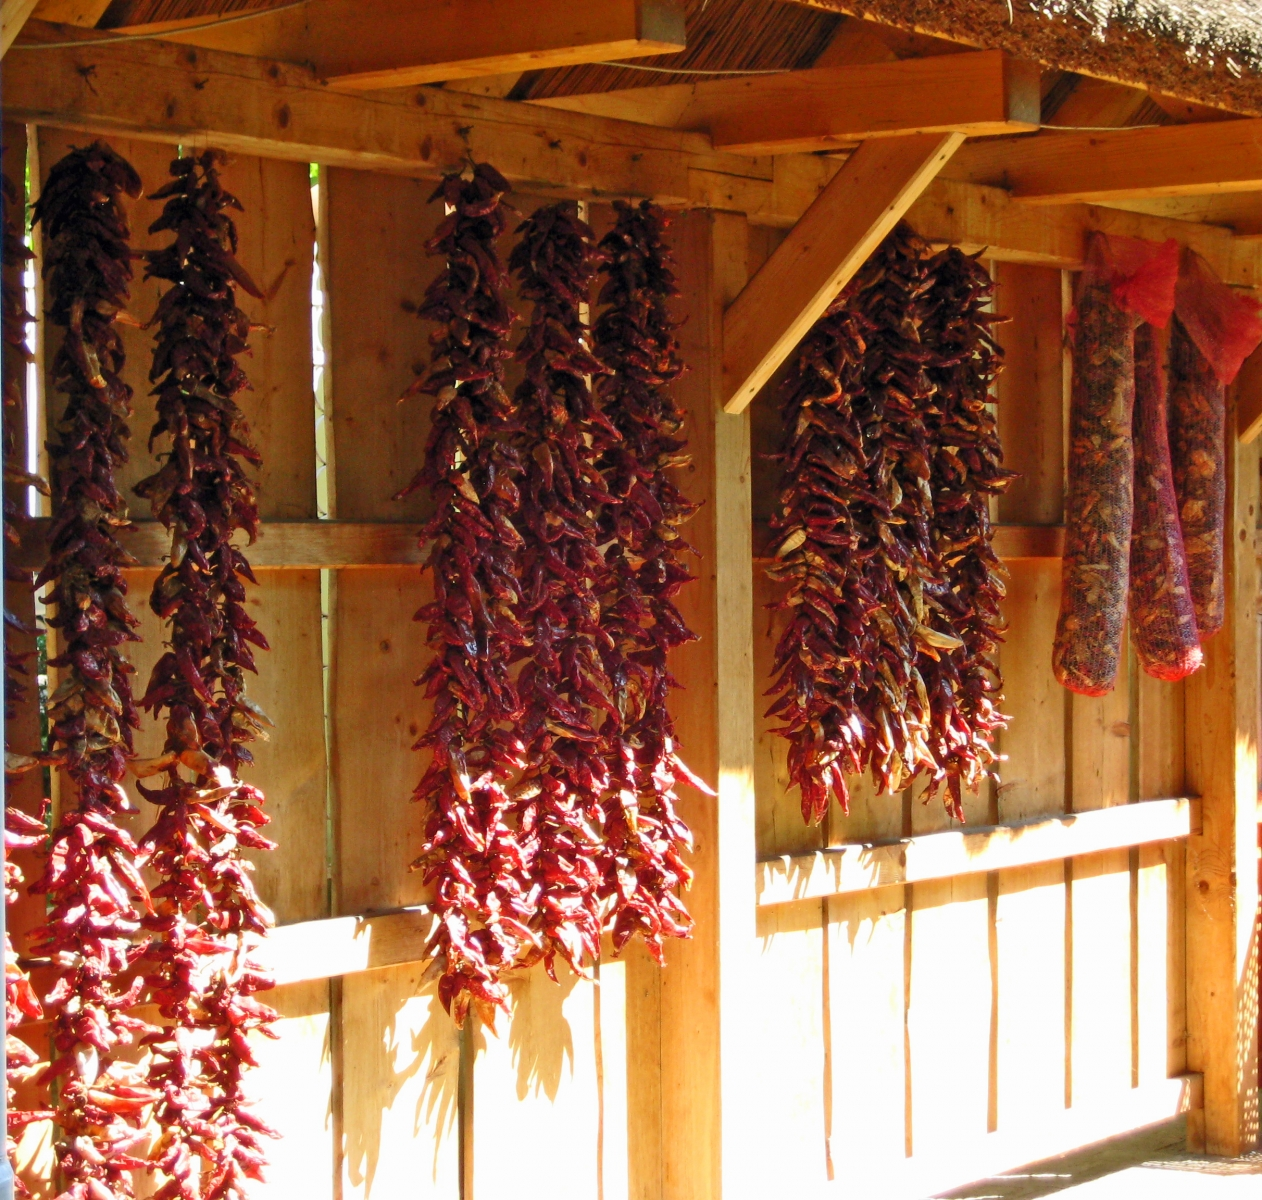 Paprika Drying Shed, Hungary